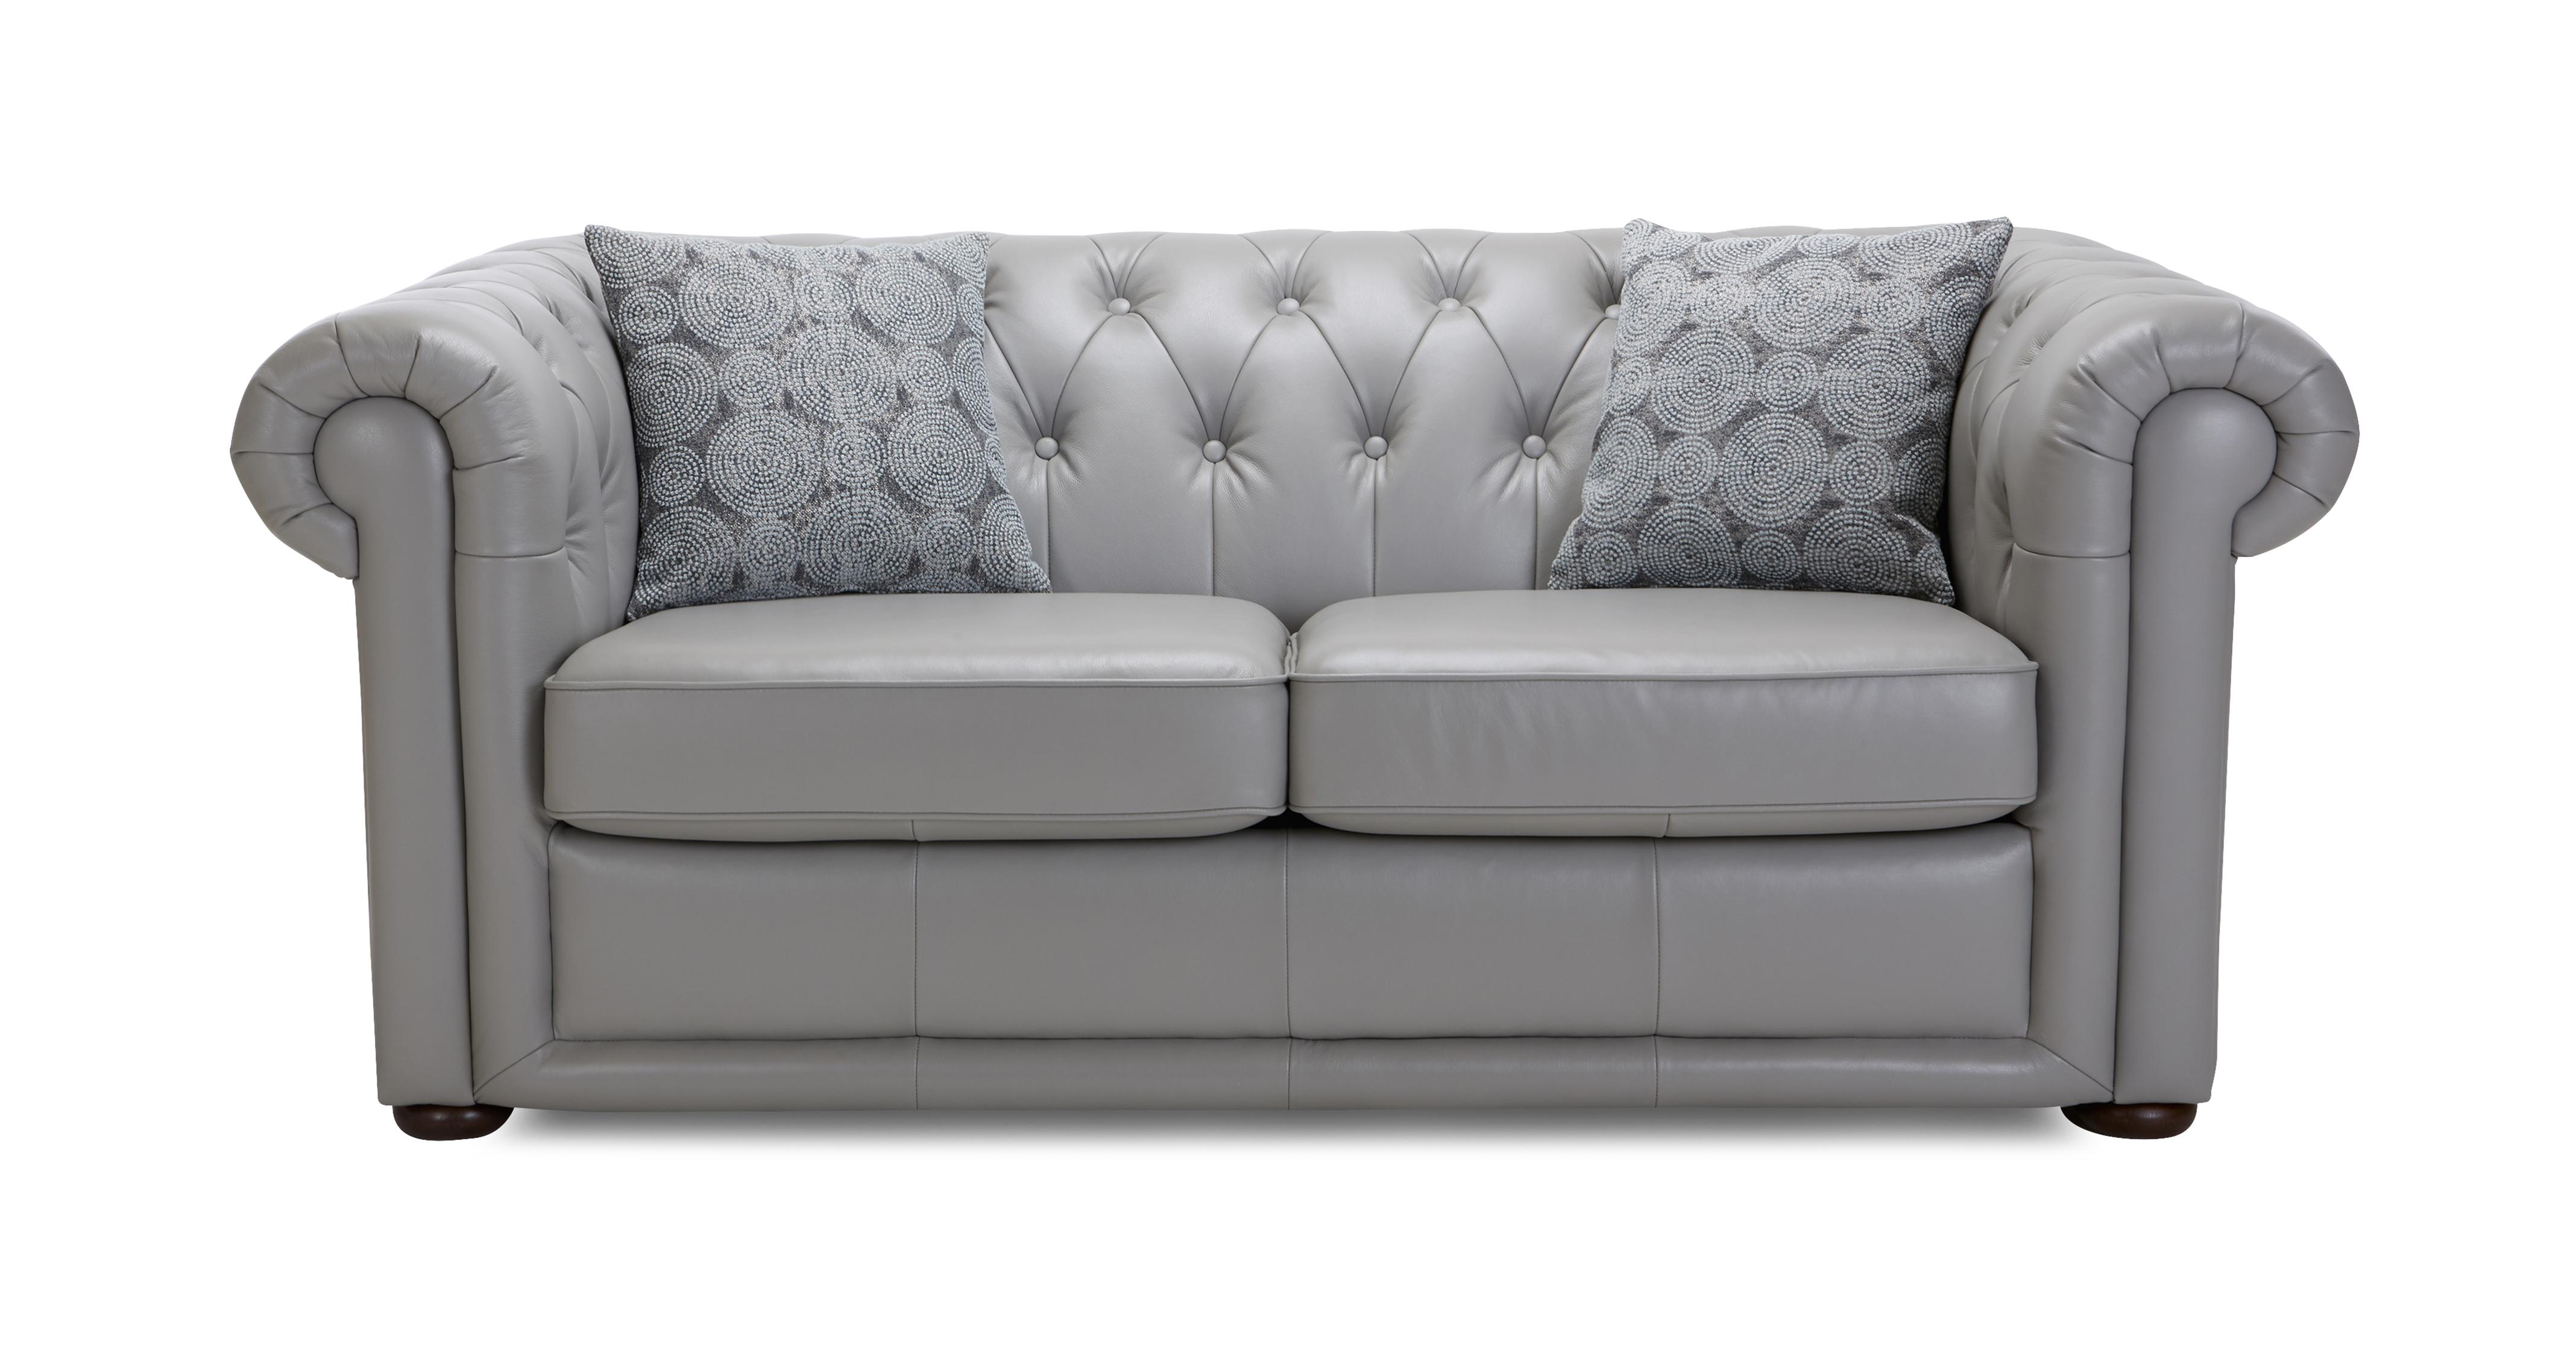 Chester Leather 2 Seater Sofa Bed Brooke | DFS